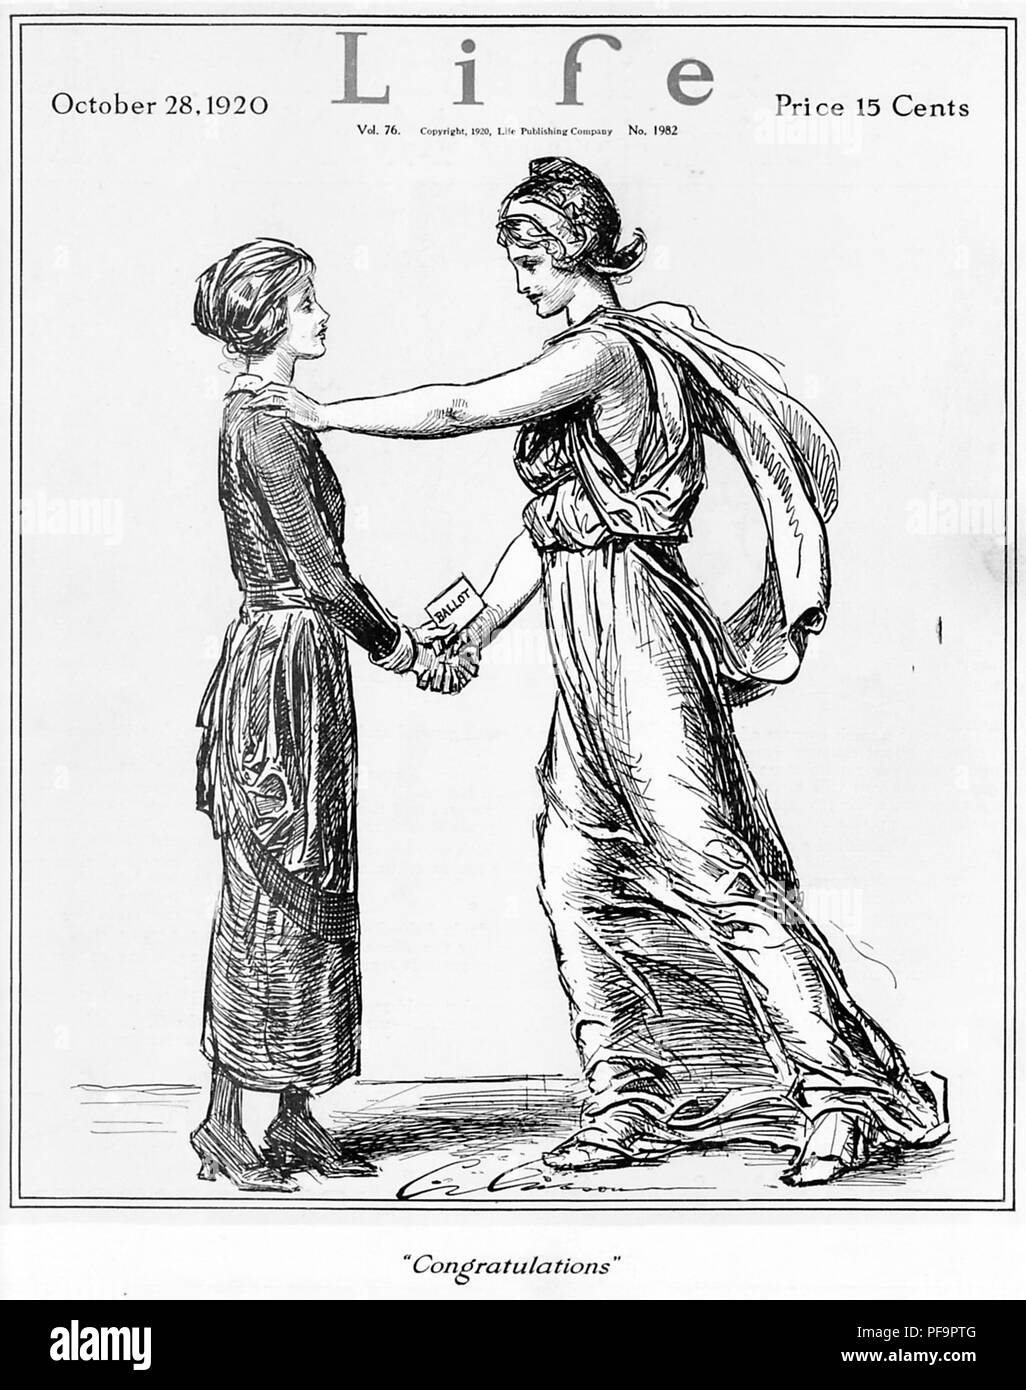 Black and white magazine cover, depicting Lady Liberty, congratulating a woman on the passage of the National Suffrage Amendment in 1920, captioned 'Congratulations, ' illustrated by Charles Dana Gibson, and published by Life magazine on October 28, 1920, for the American market, October 28, 1920. () - Stock Image